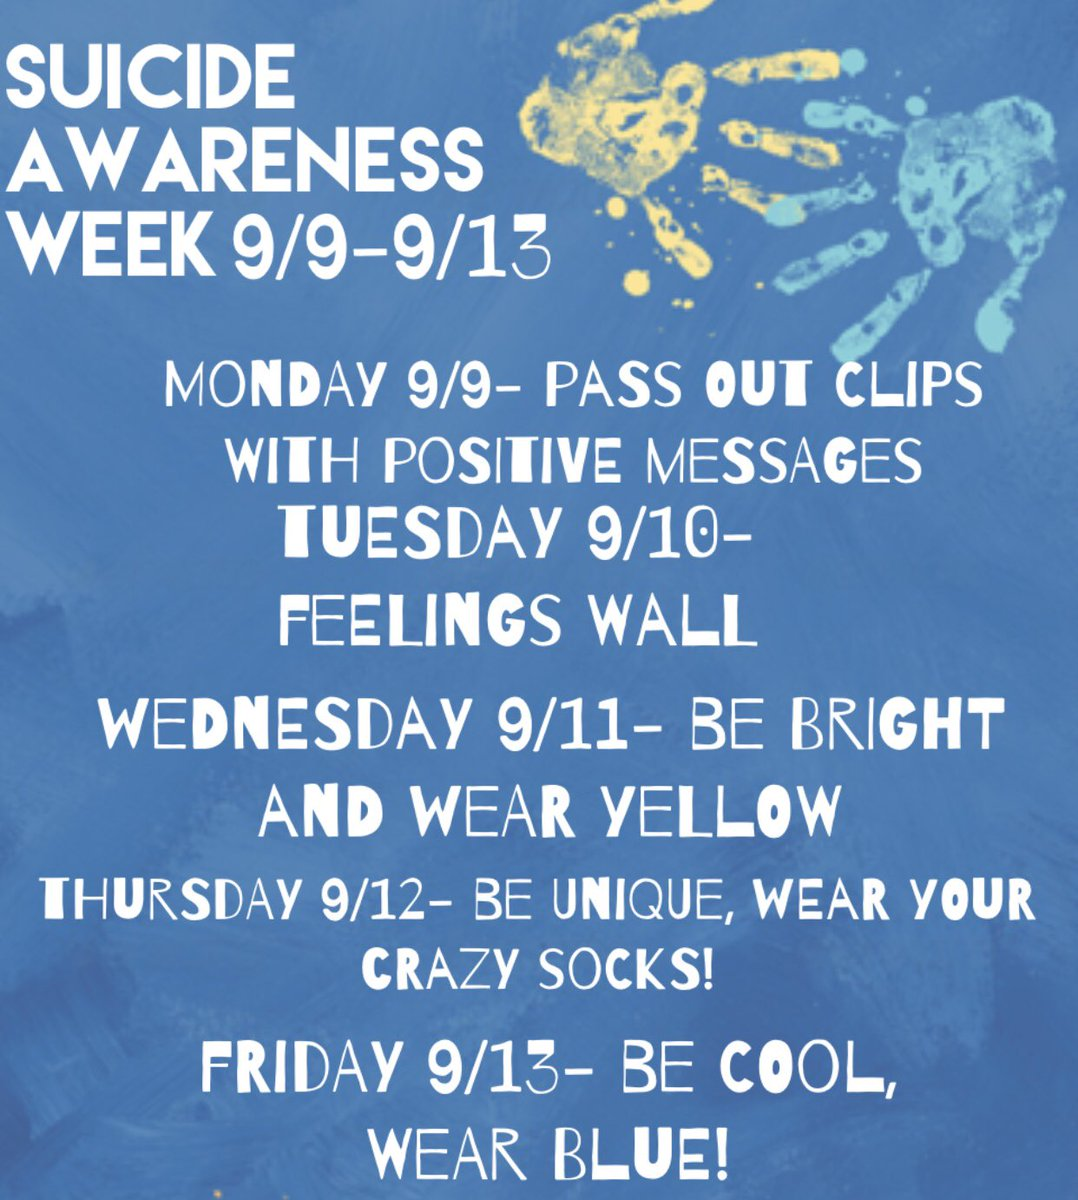 We 💛 our students ! Next week will be dressing up in honor of suicide awareness week . We want to show all our support and hope everyone participates , spread the word ! 💙 #mbybob https://t.co/K9Z3yljiQT